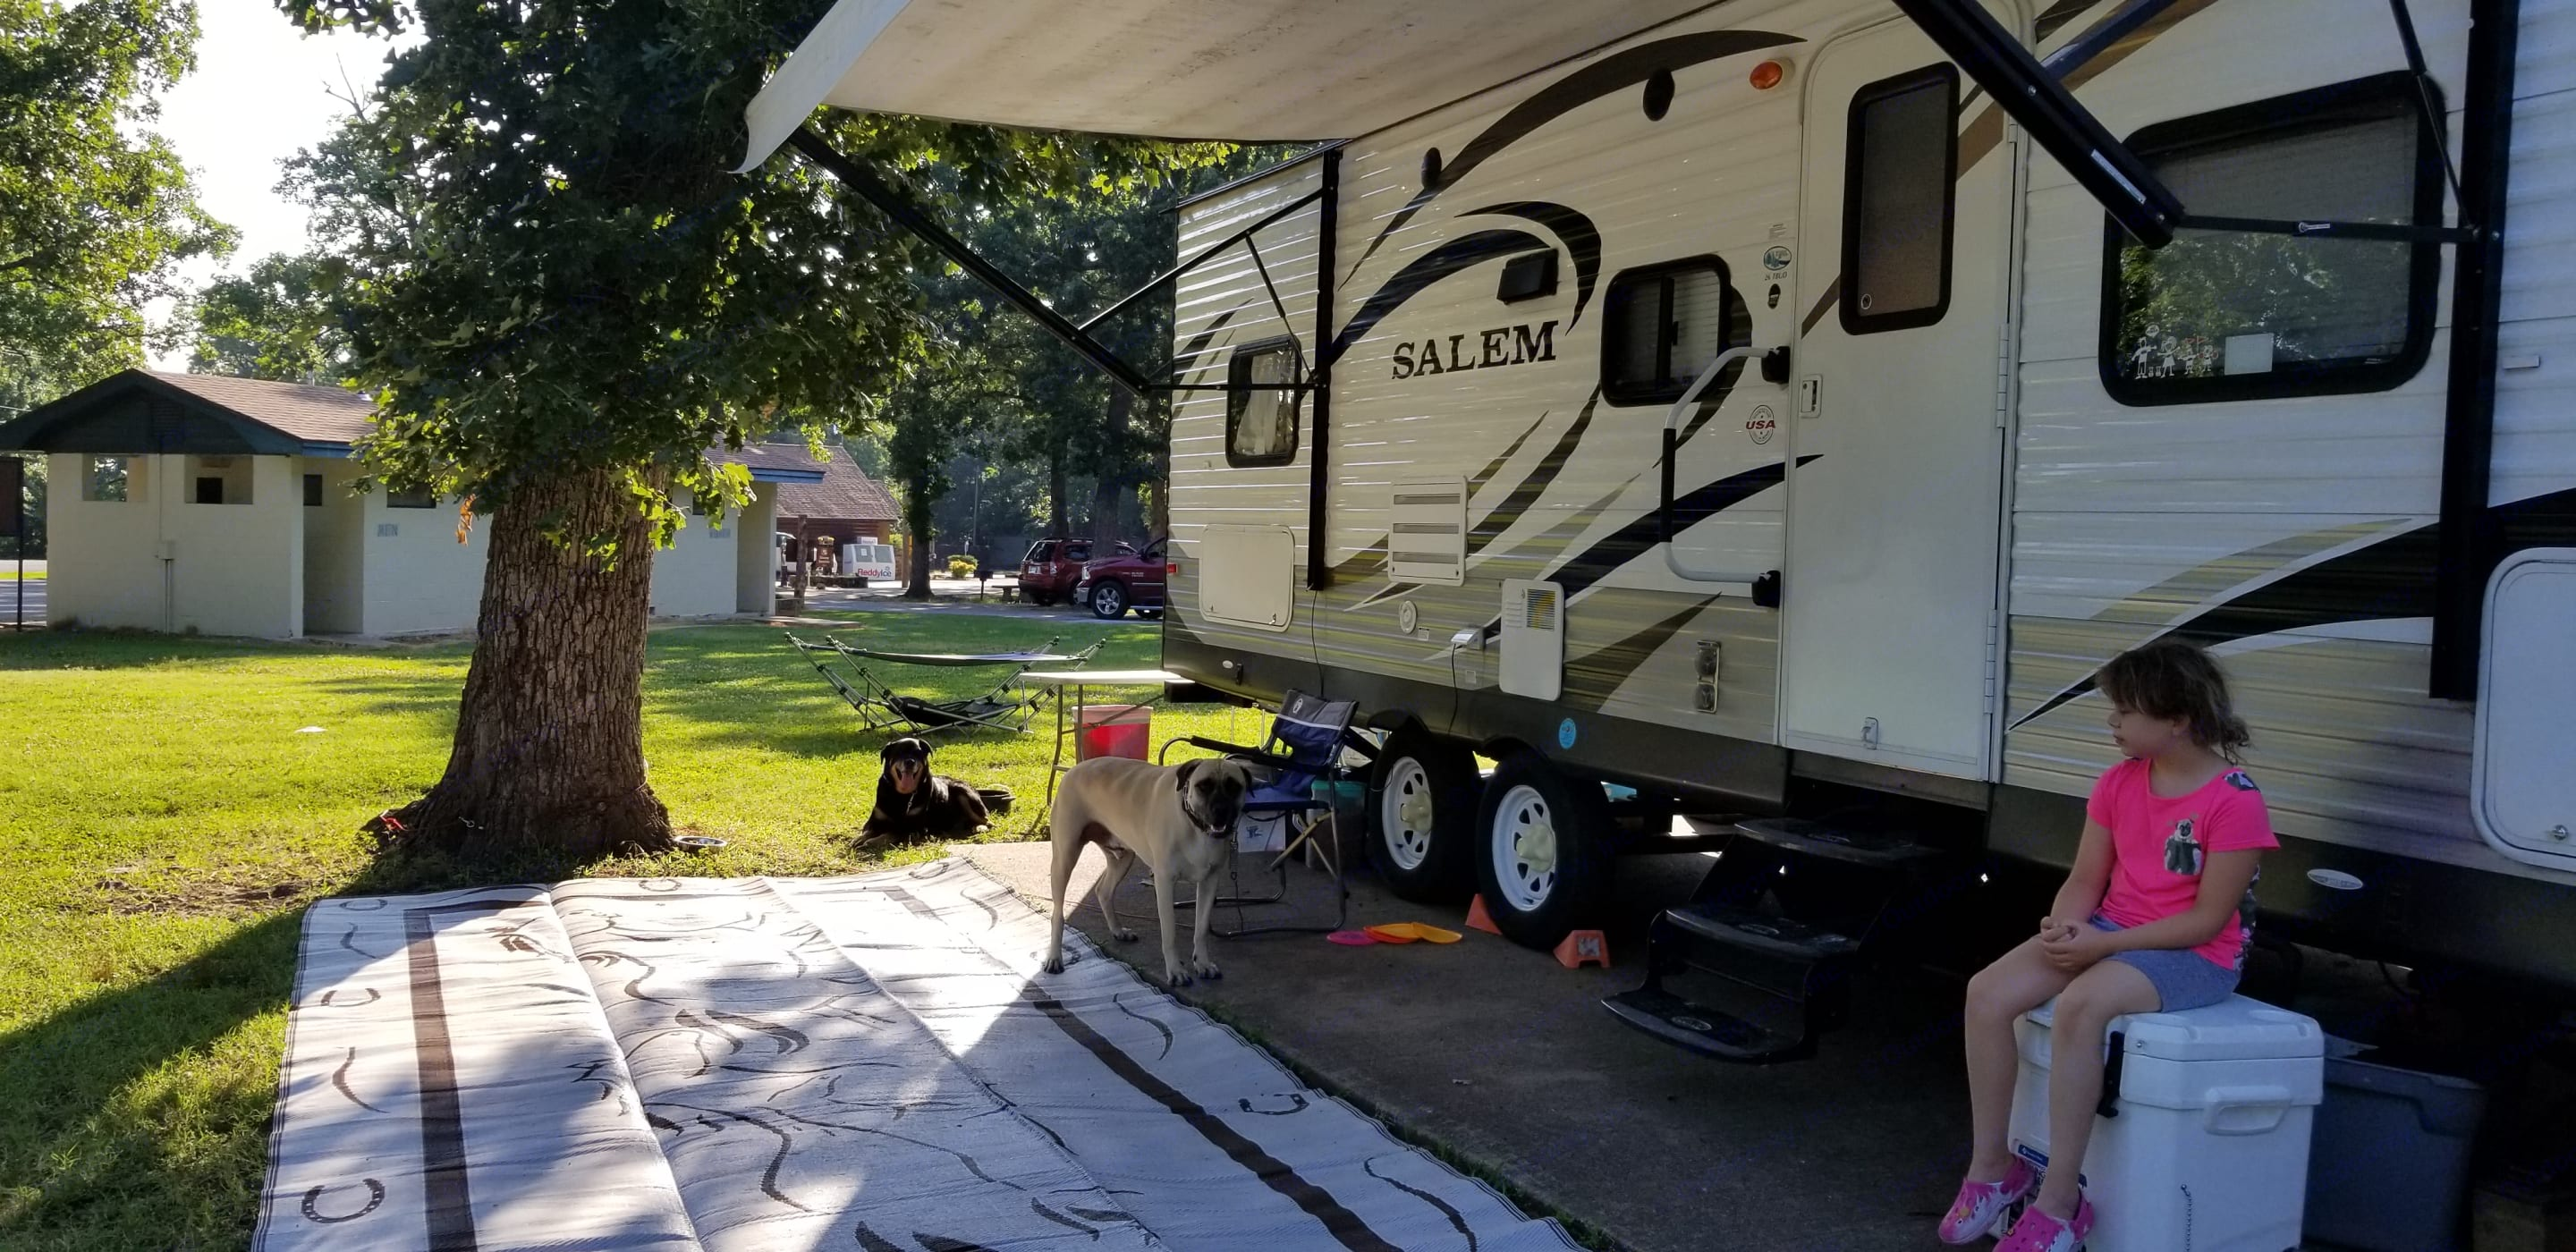 Pups and kid not included! Outside of camper, has a lot of storage, will include a basic grill and basic supplies. More pics to come, we dont spend much time inside so dont have any handy! Pets may be considered, but not a normal exception.  . Forest River Salem 2014